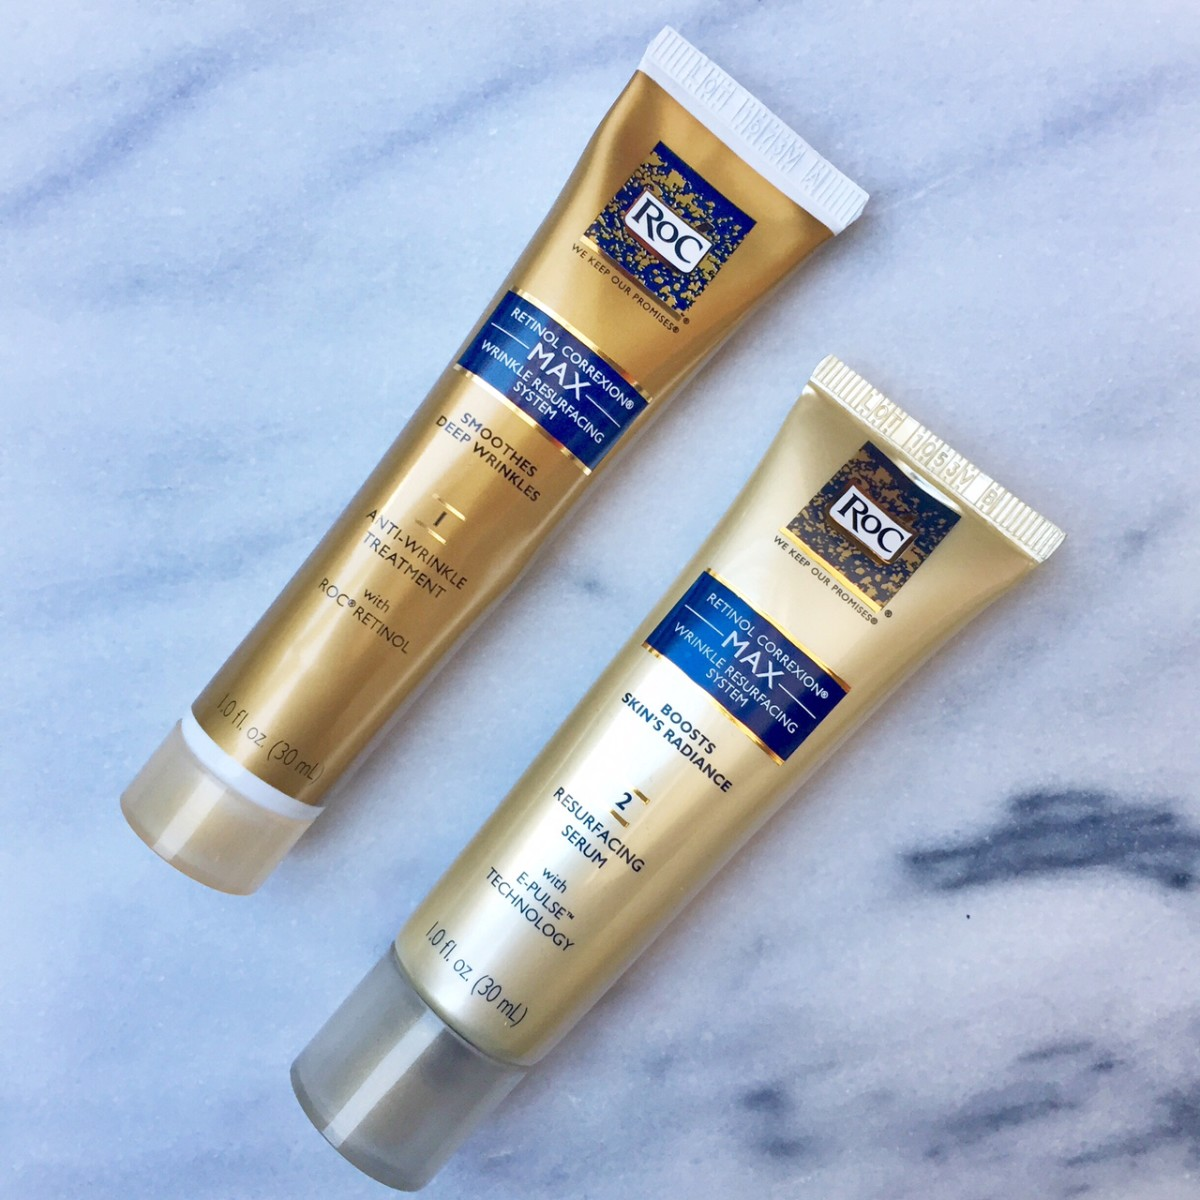 Two Weeks With Roc Retinol Correxion Max Wrinkle Resurfacing System